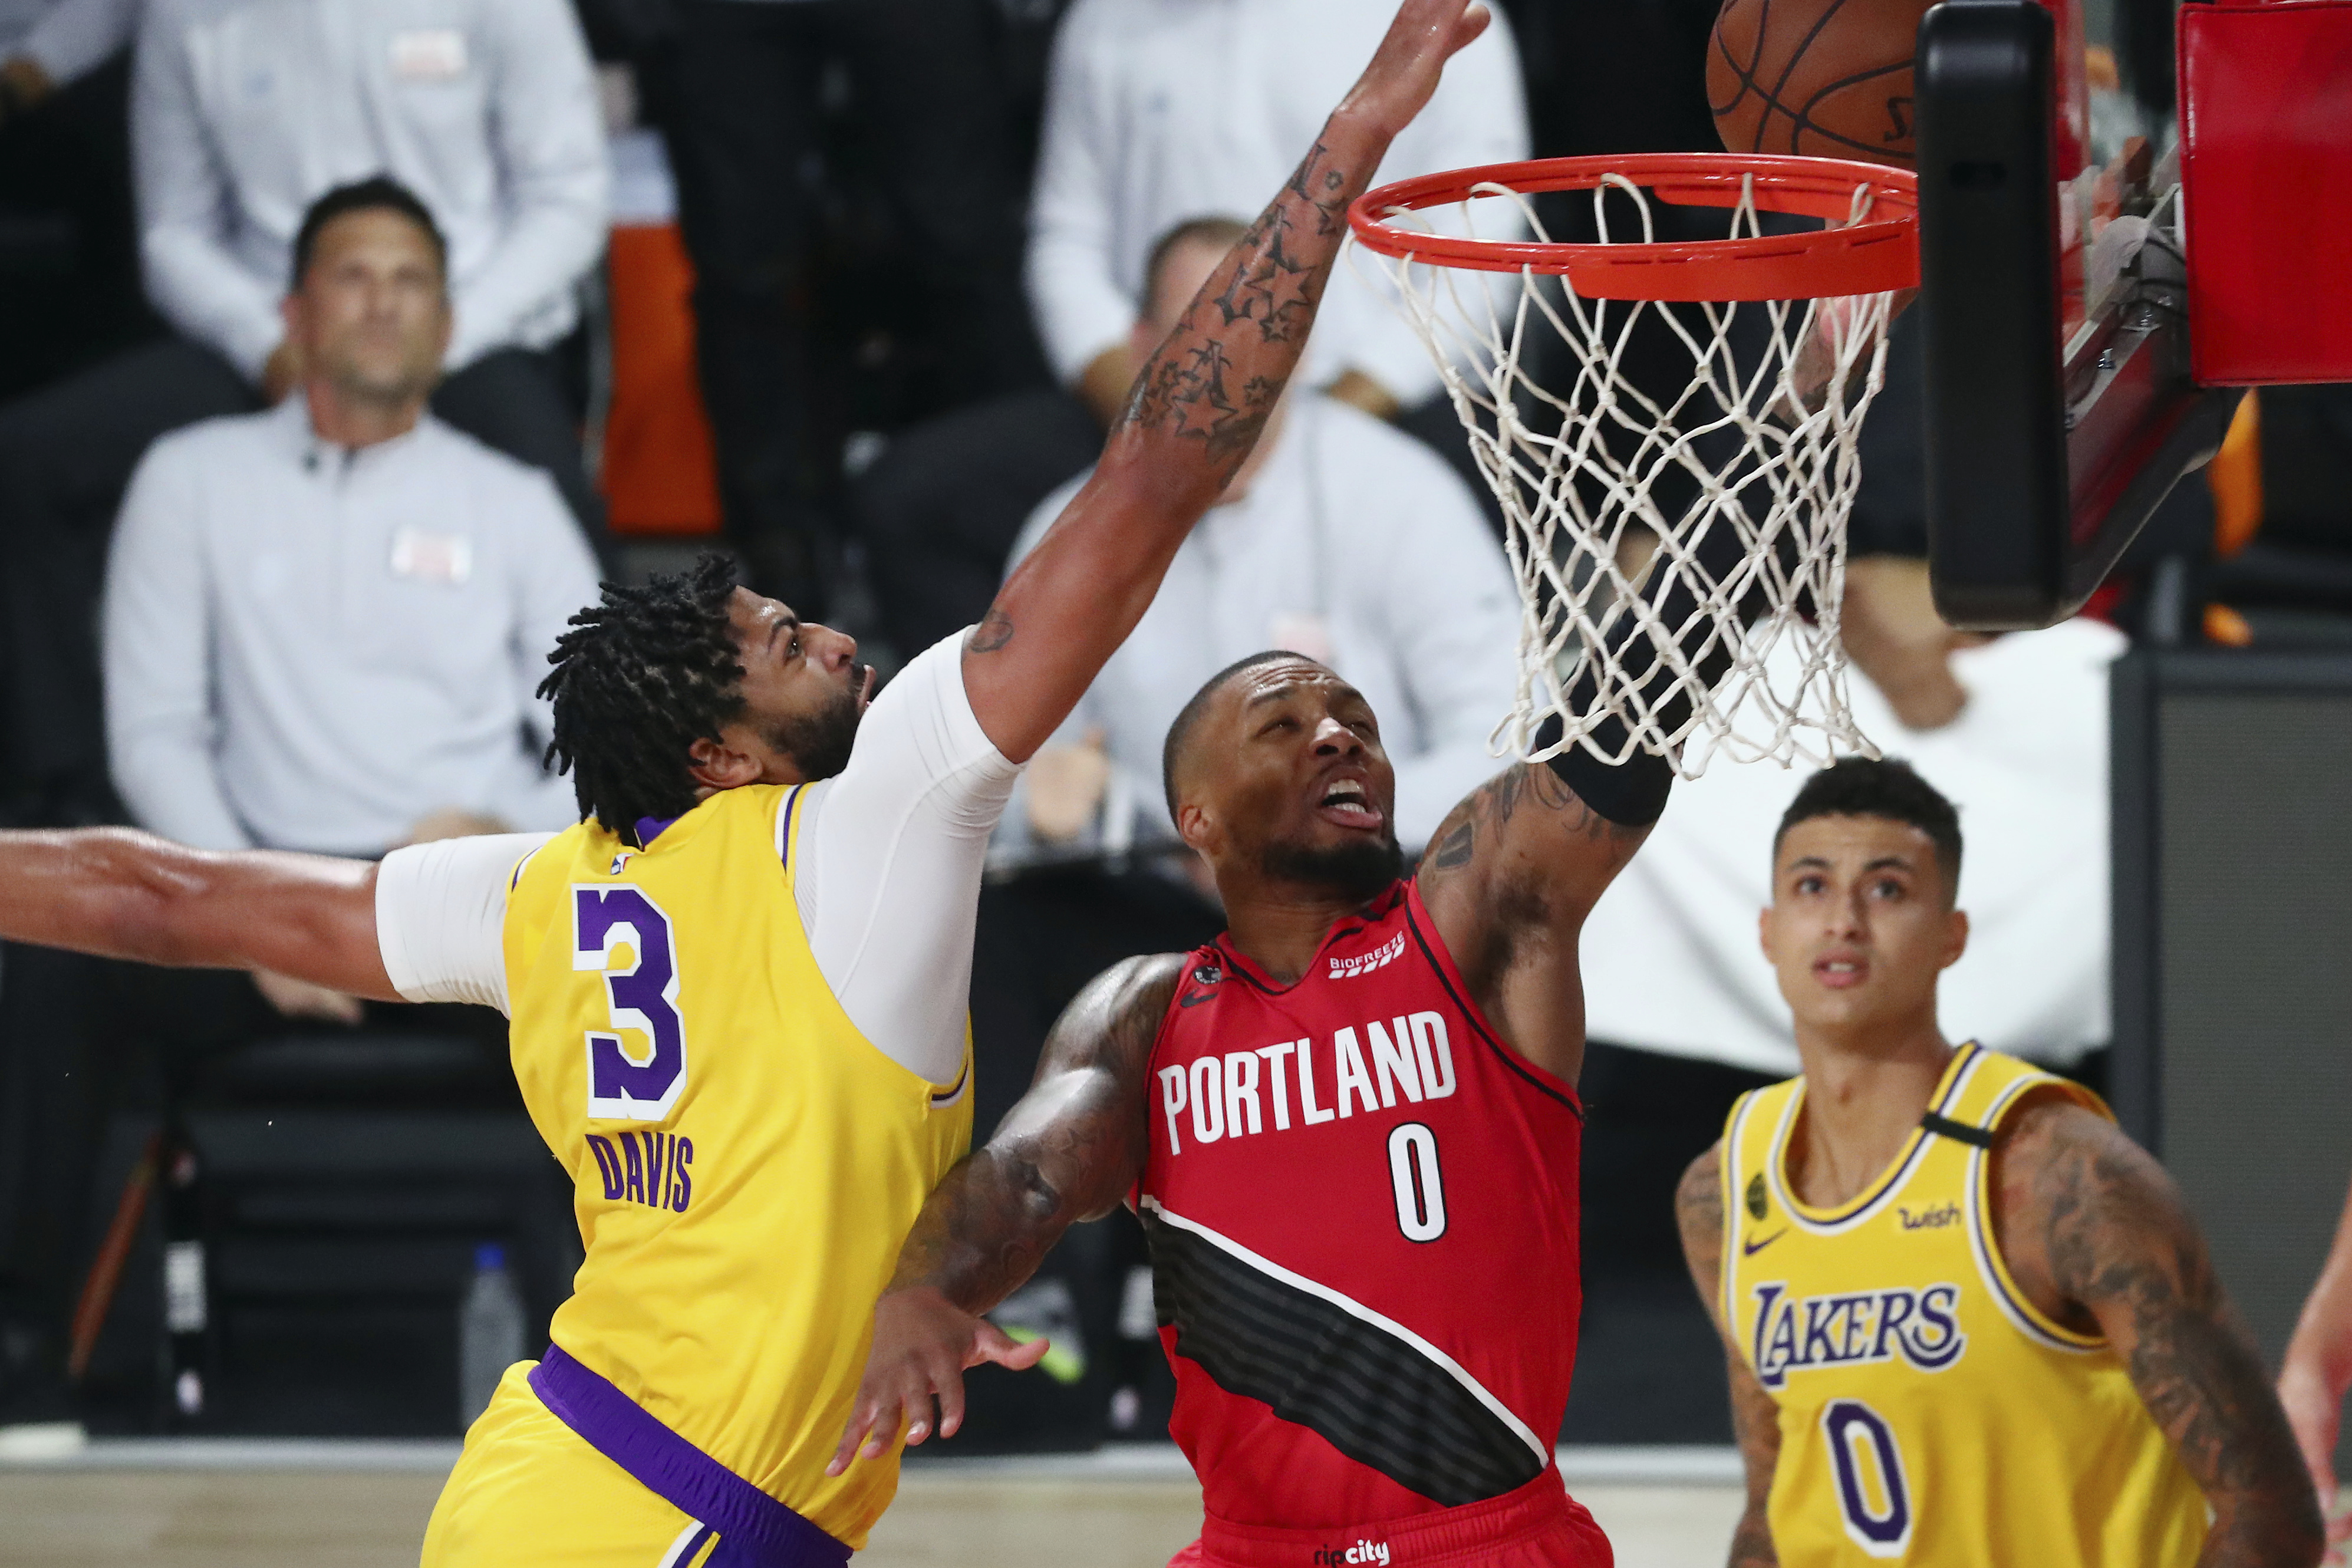 Los Angeles Lakers deal Portland Trail Blazers blowout loss in ...